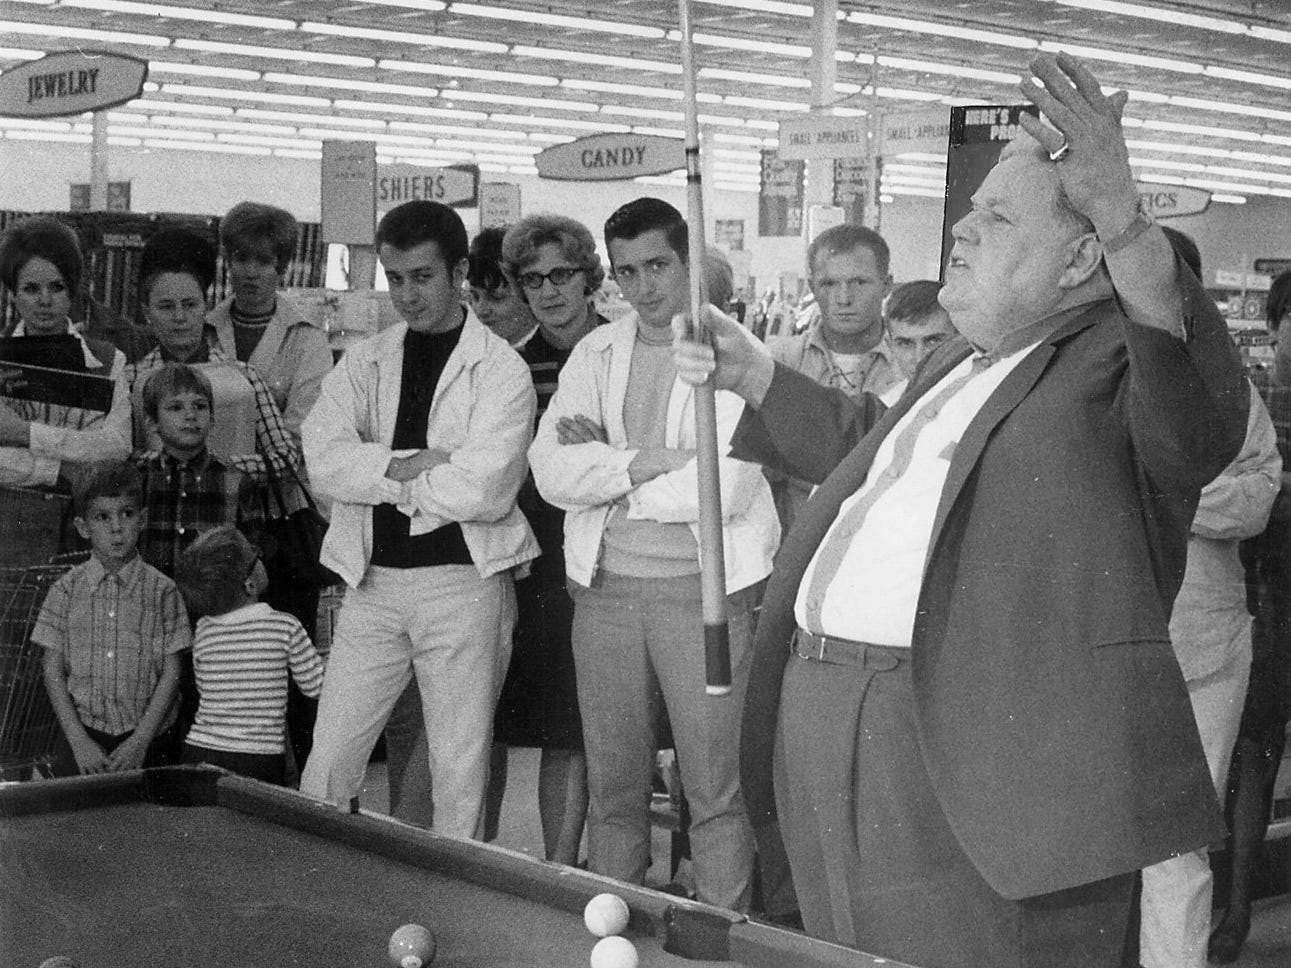 Minnesota Fats tells a story during a 1969 visit to an Arlans store in Des Moines.